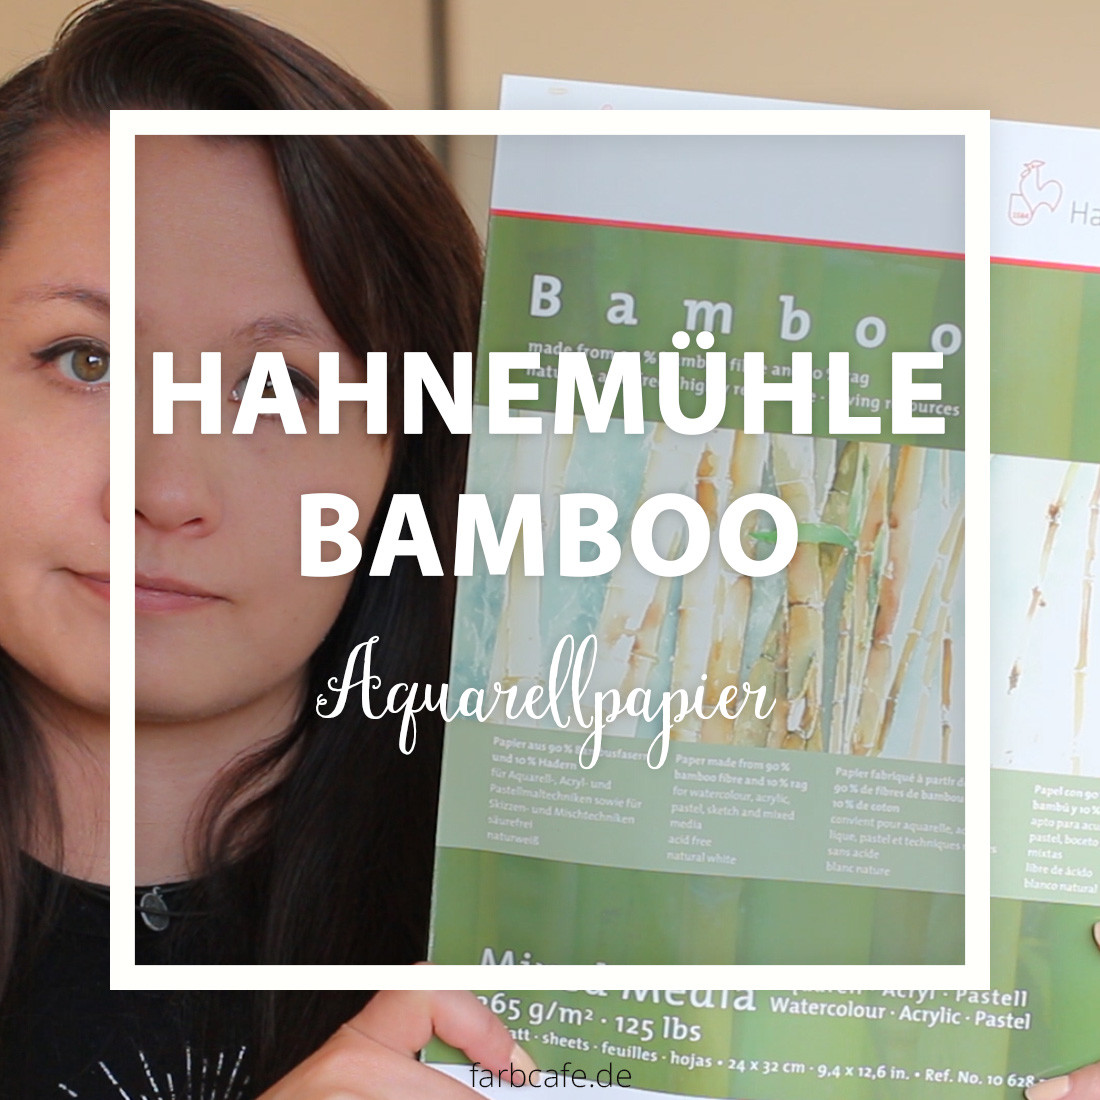 Hahnemühle Bamboo Mixed Media Testbericht